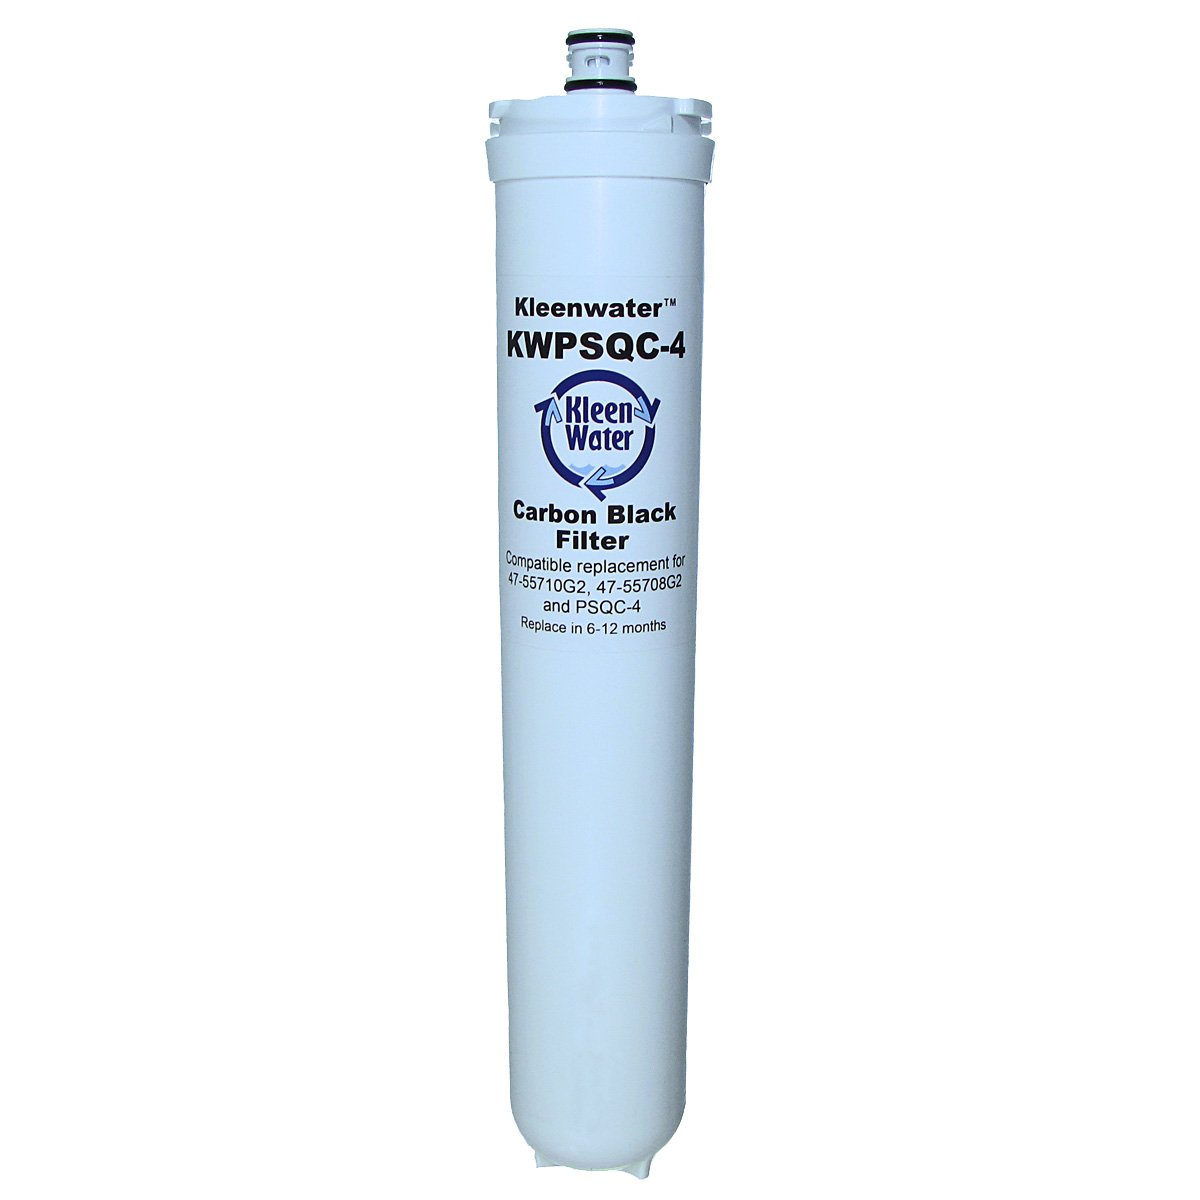 47-55711CM and 47-55707CM KleenWater Compatible Water Filters for Whirlpool 4373574 and 3M Water Factory FM-3 DWS 350 Cartridge Set 47-55711G2 47-55707G2